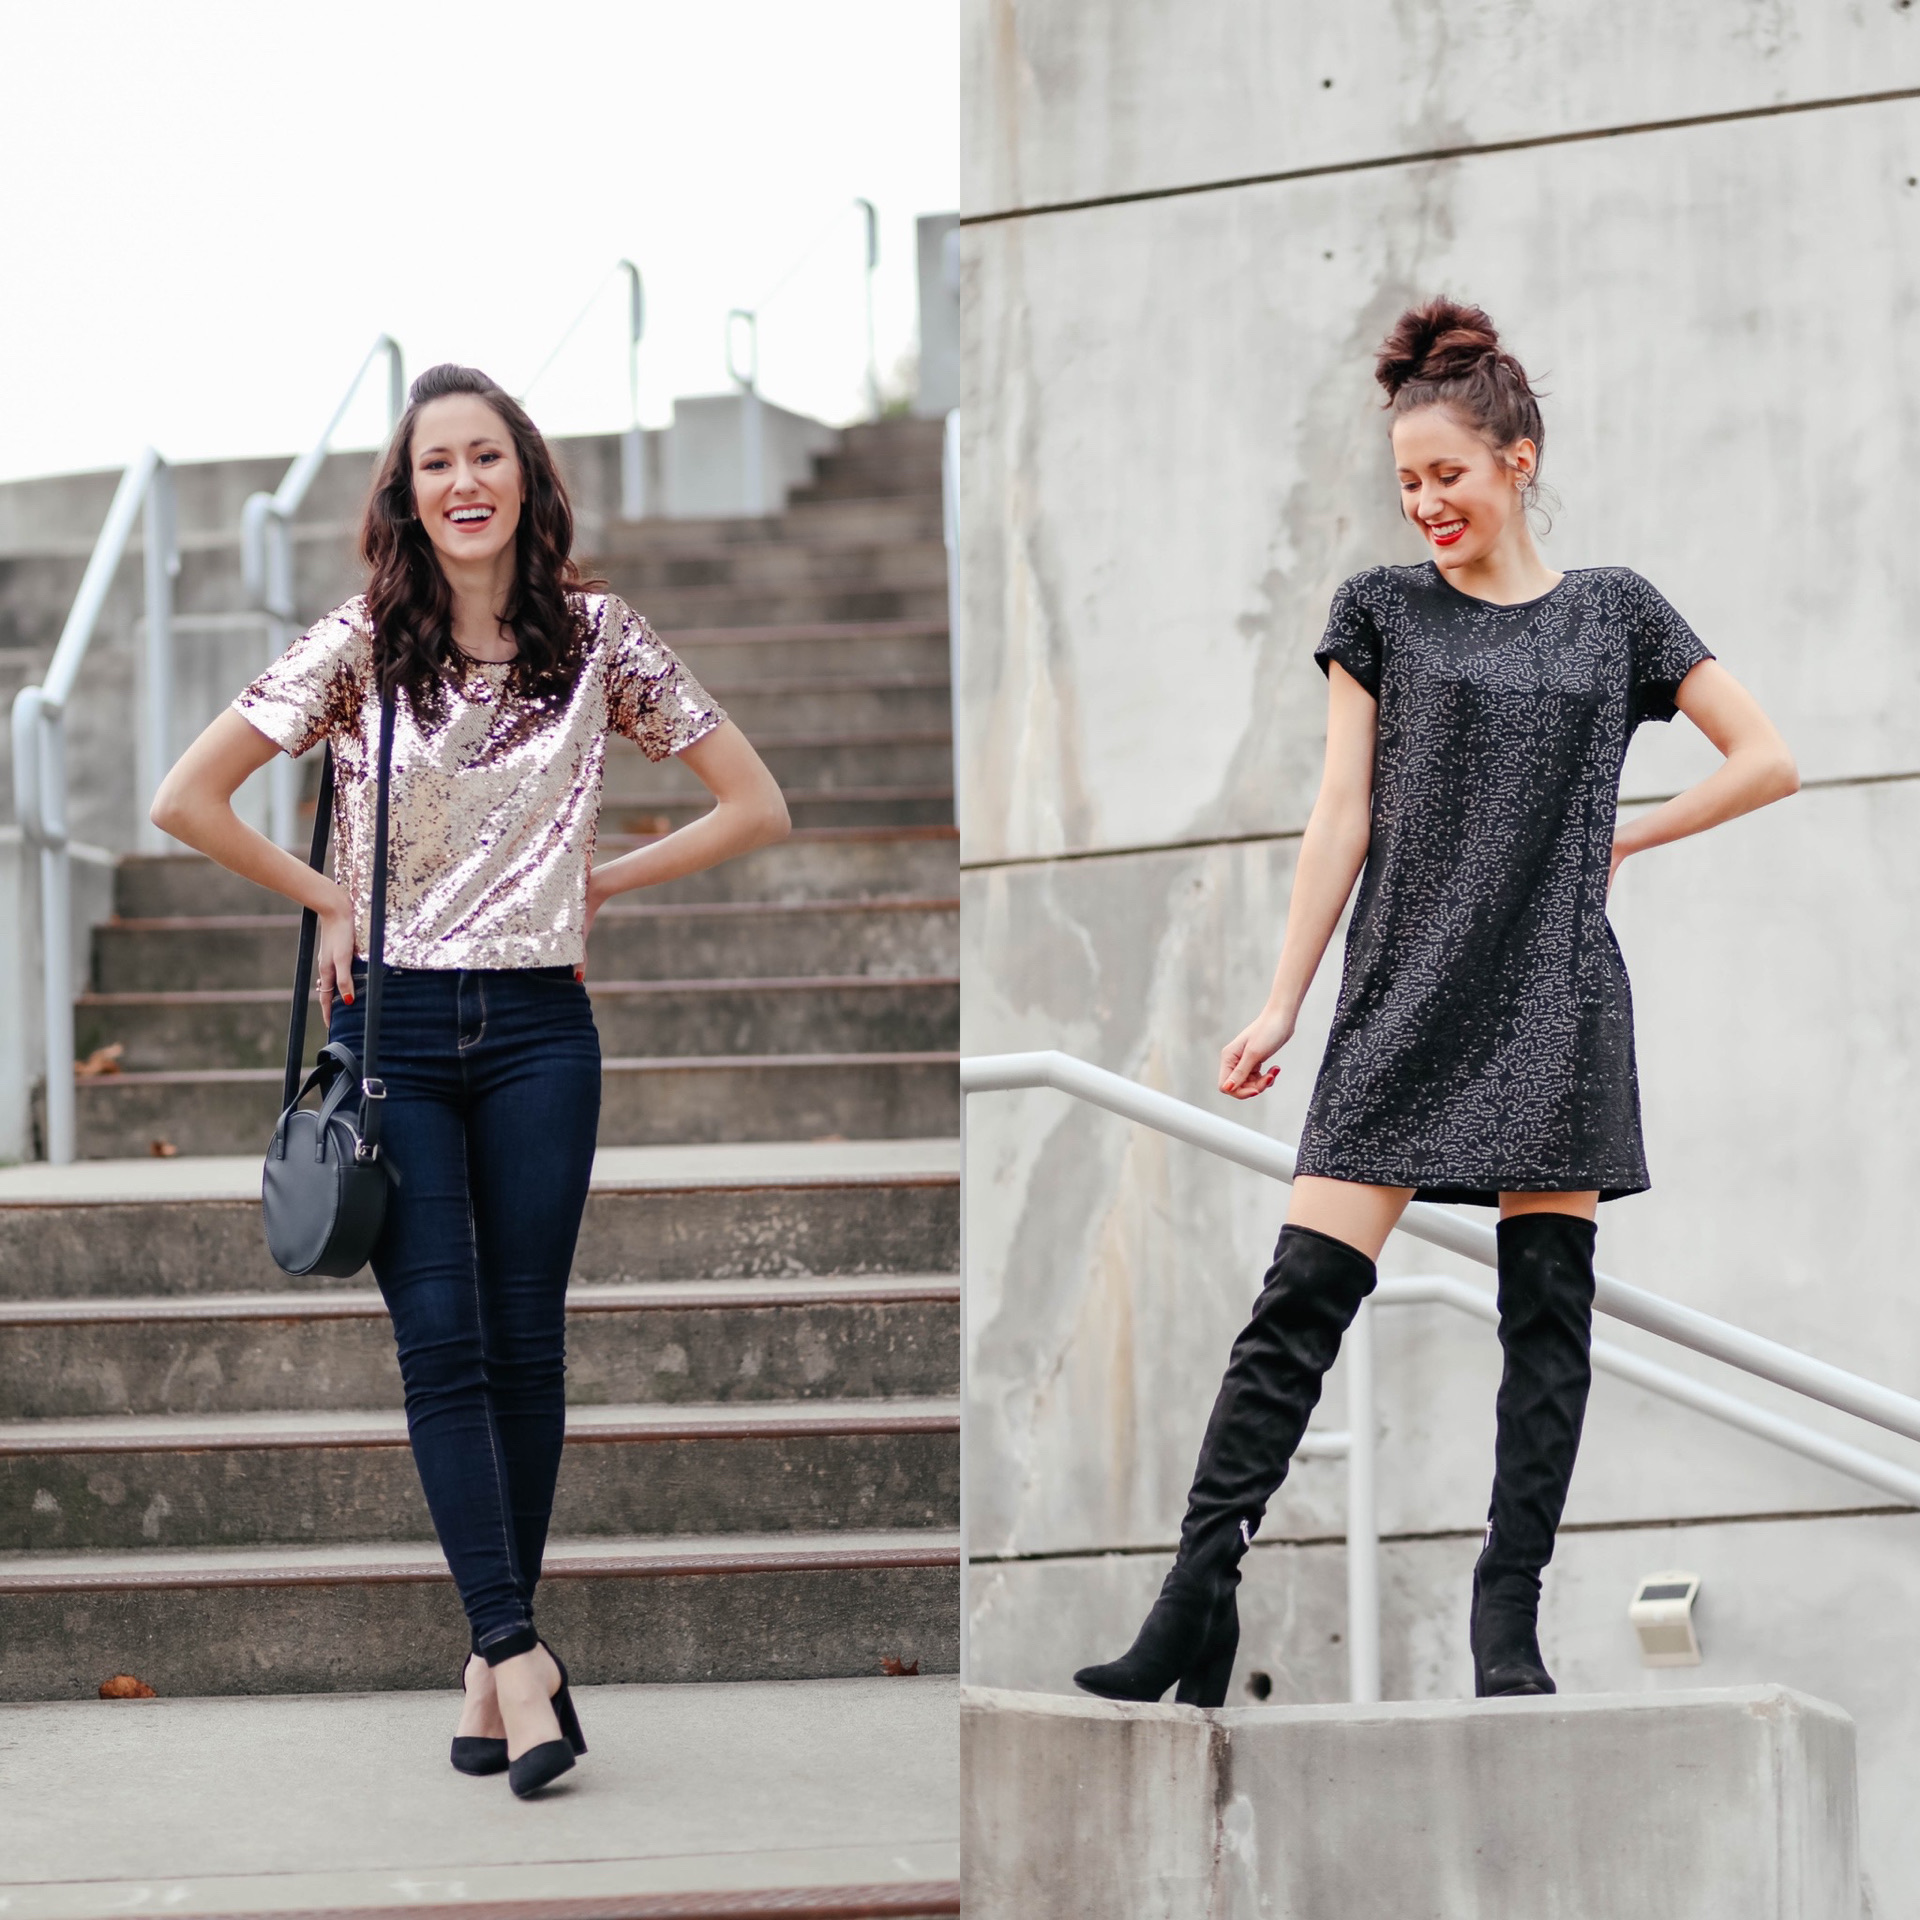 TWO Ways to Wear Sequins for the Holidays - Affordable Holiday Looks from Walmart on Coming Up Roses